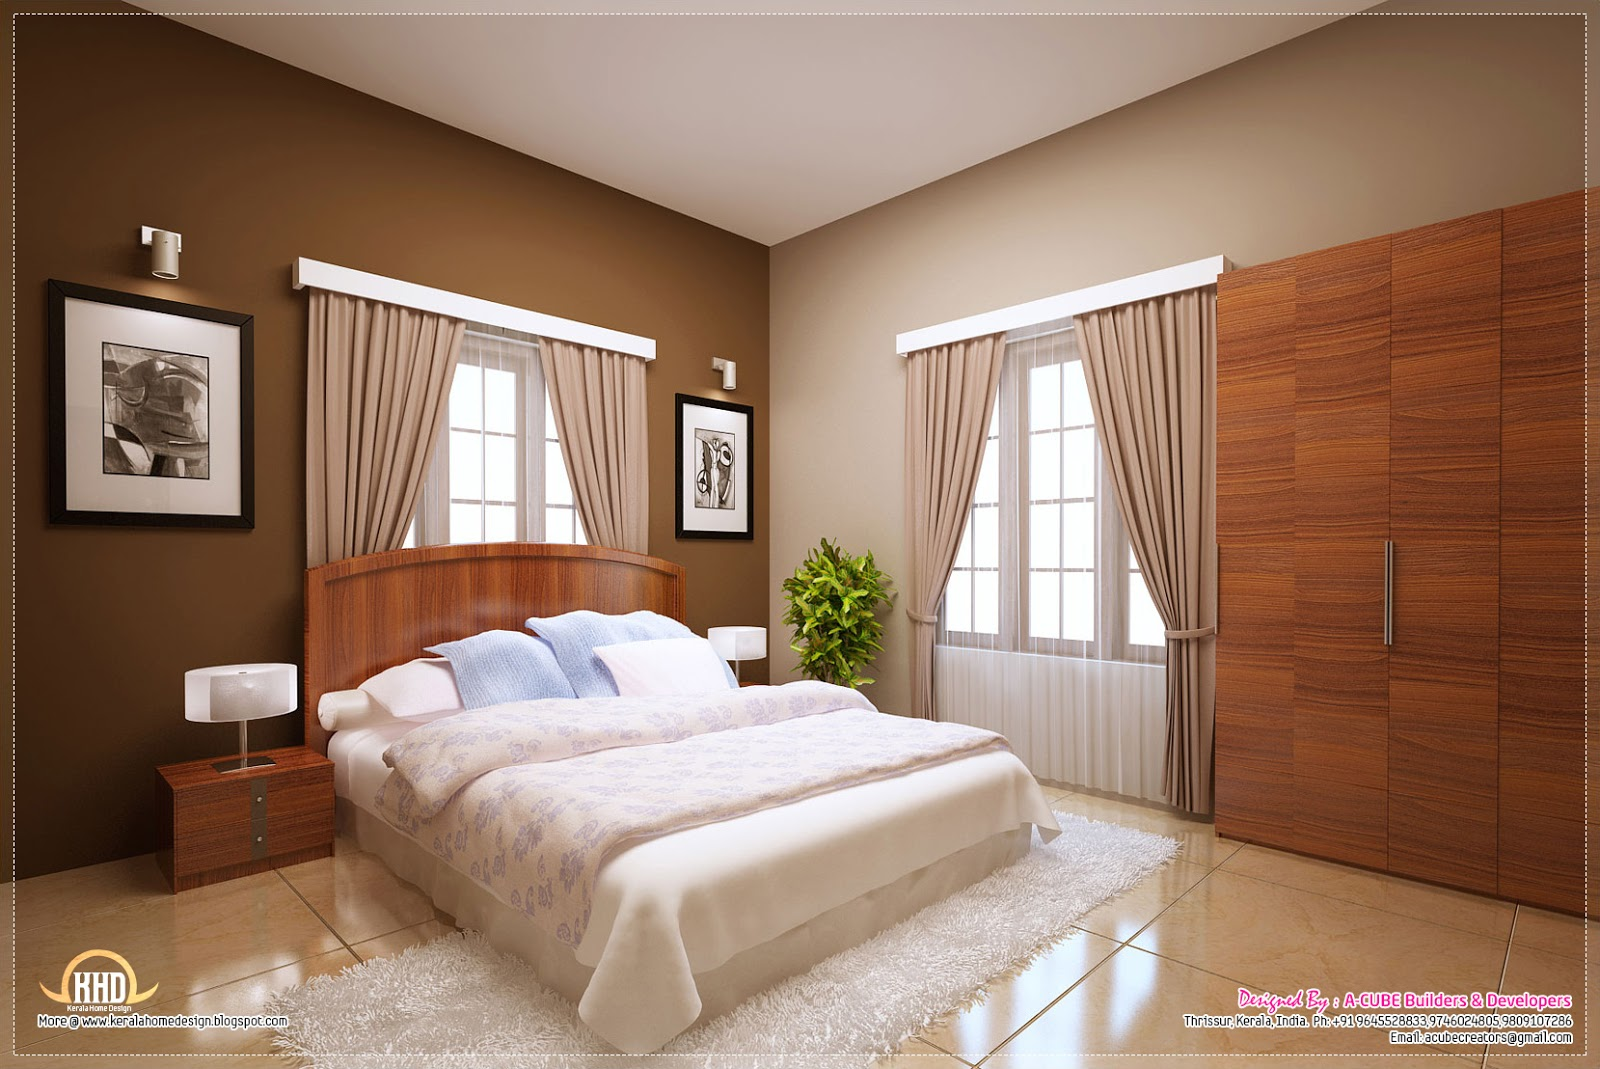 Awesome interior decoration ideas house design plans for Bed interior design picture